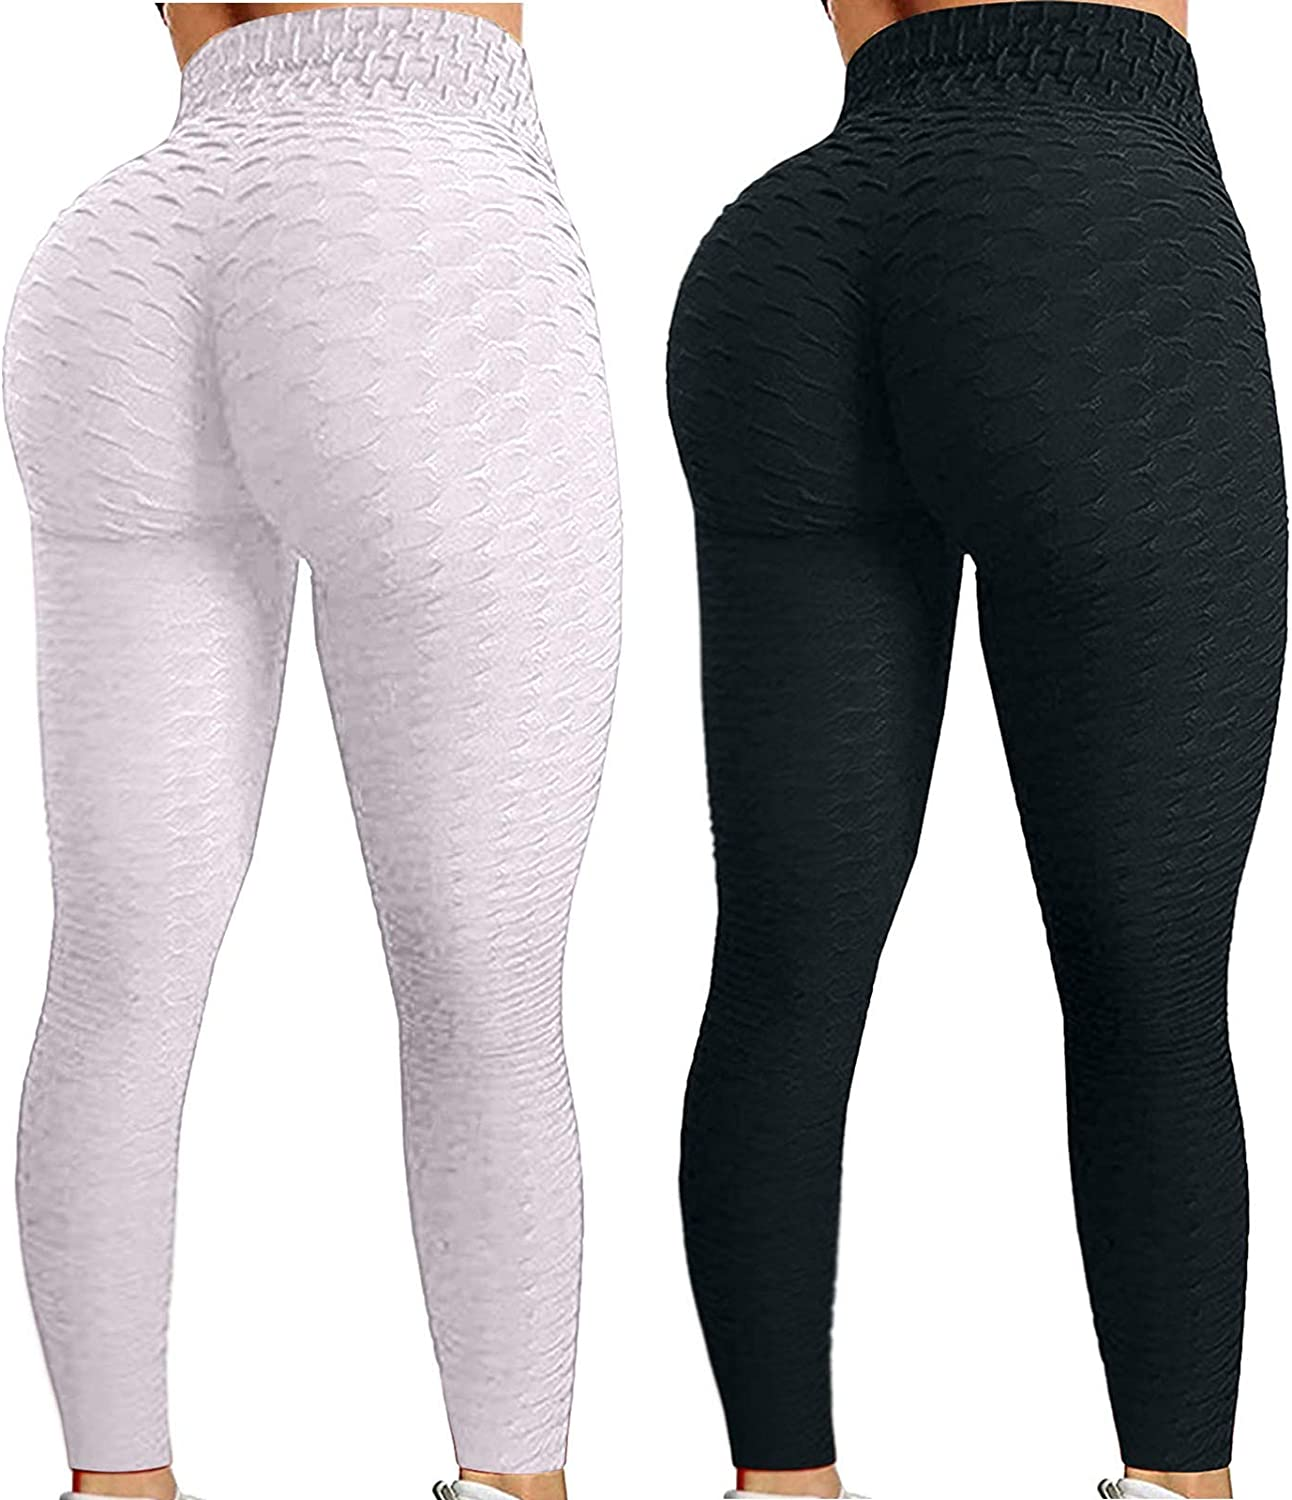 Gwewei4df 2PC TIK Tok High Waist OFFicial mail order Leggings Pants Yoga Seamless Beauty products Yo